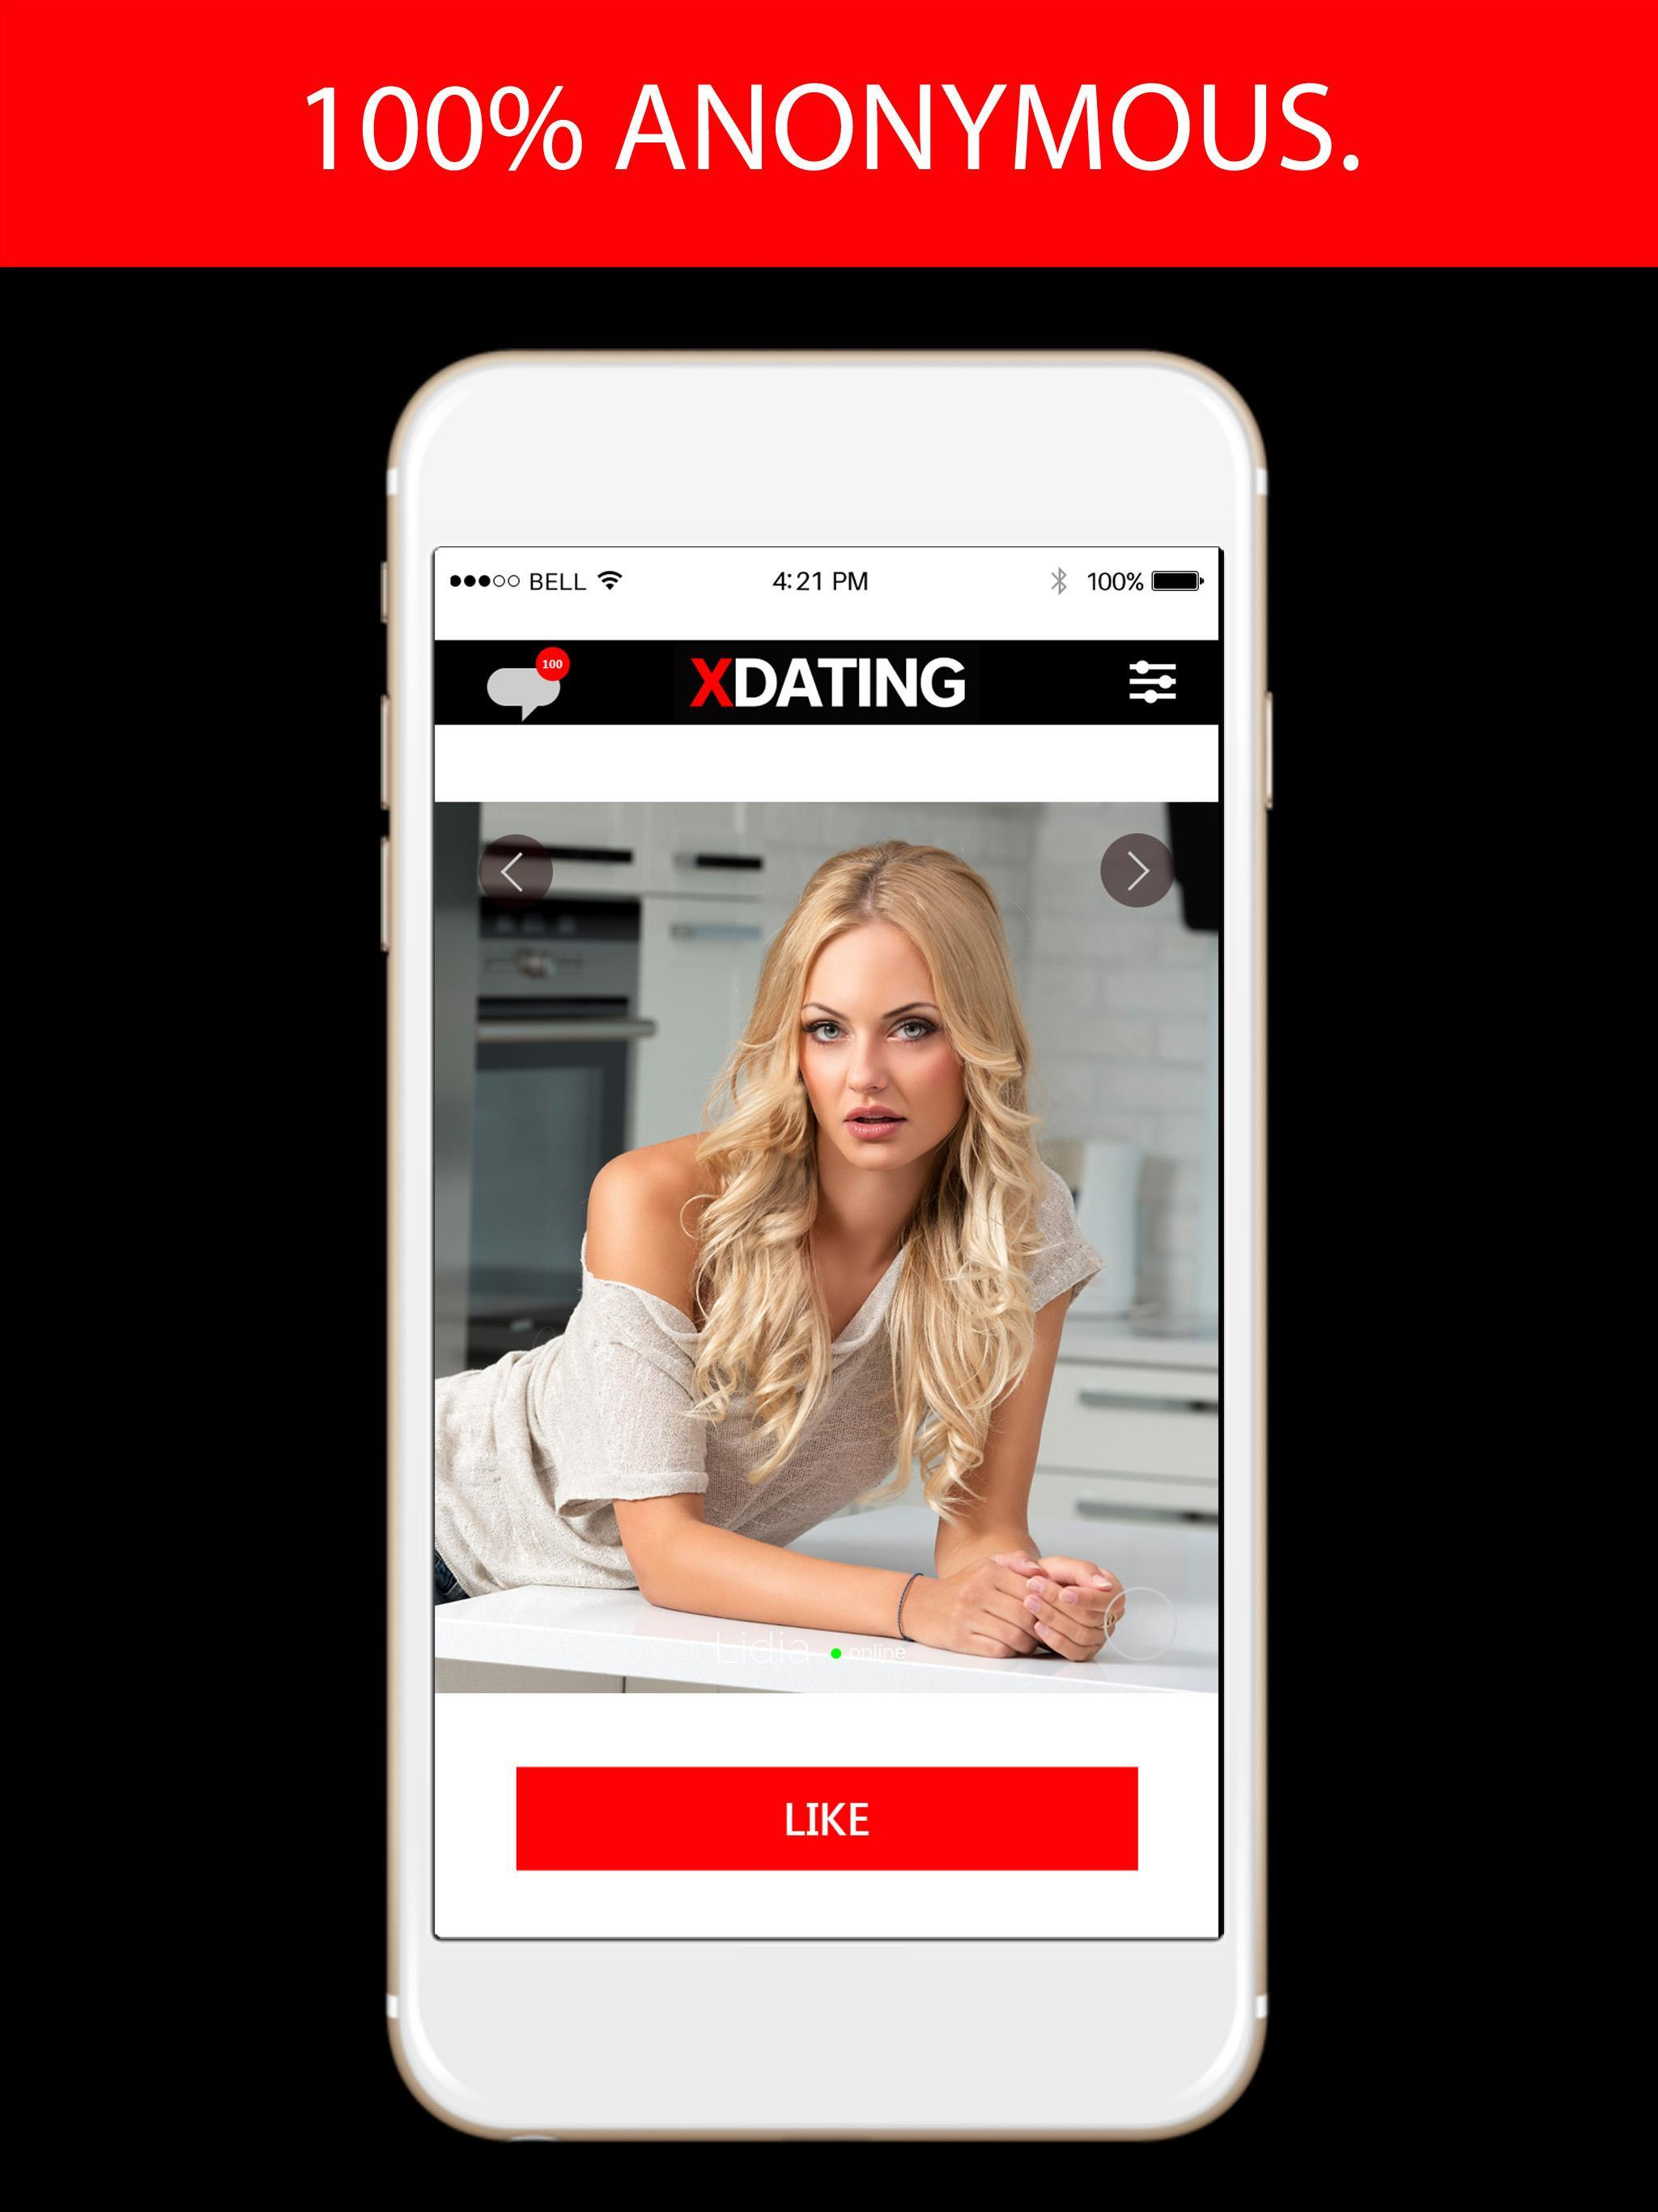 Xdating facebook dating a married man forum